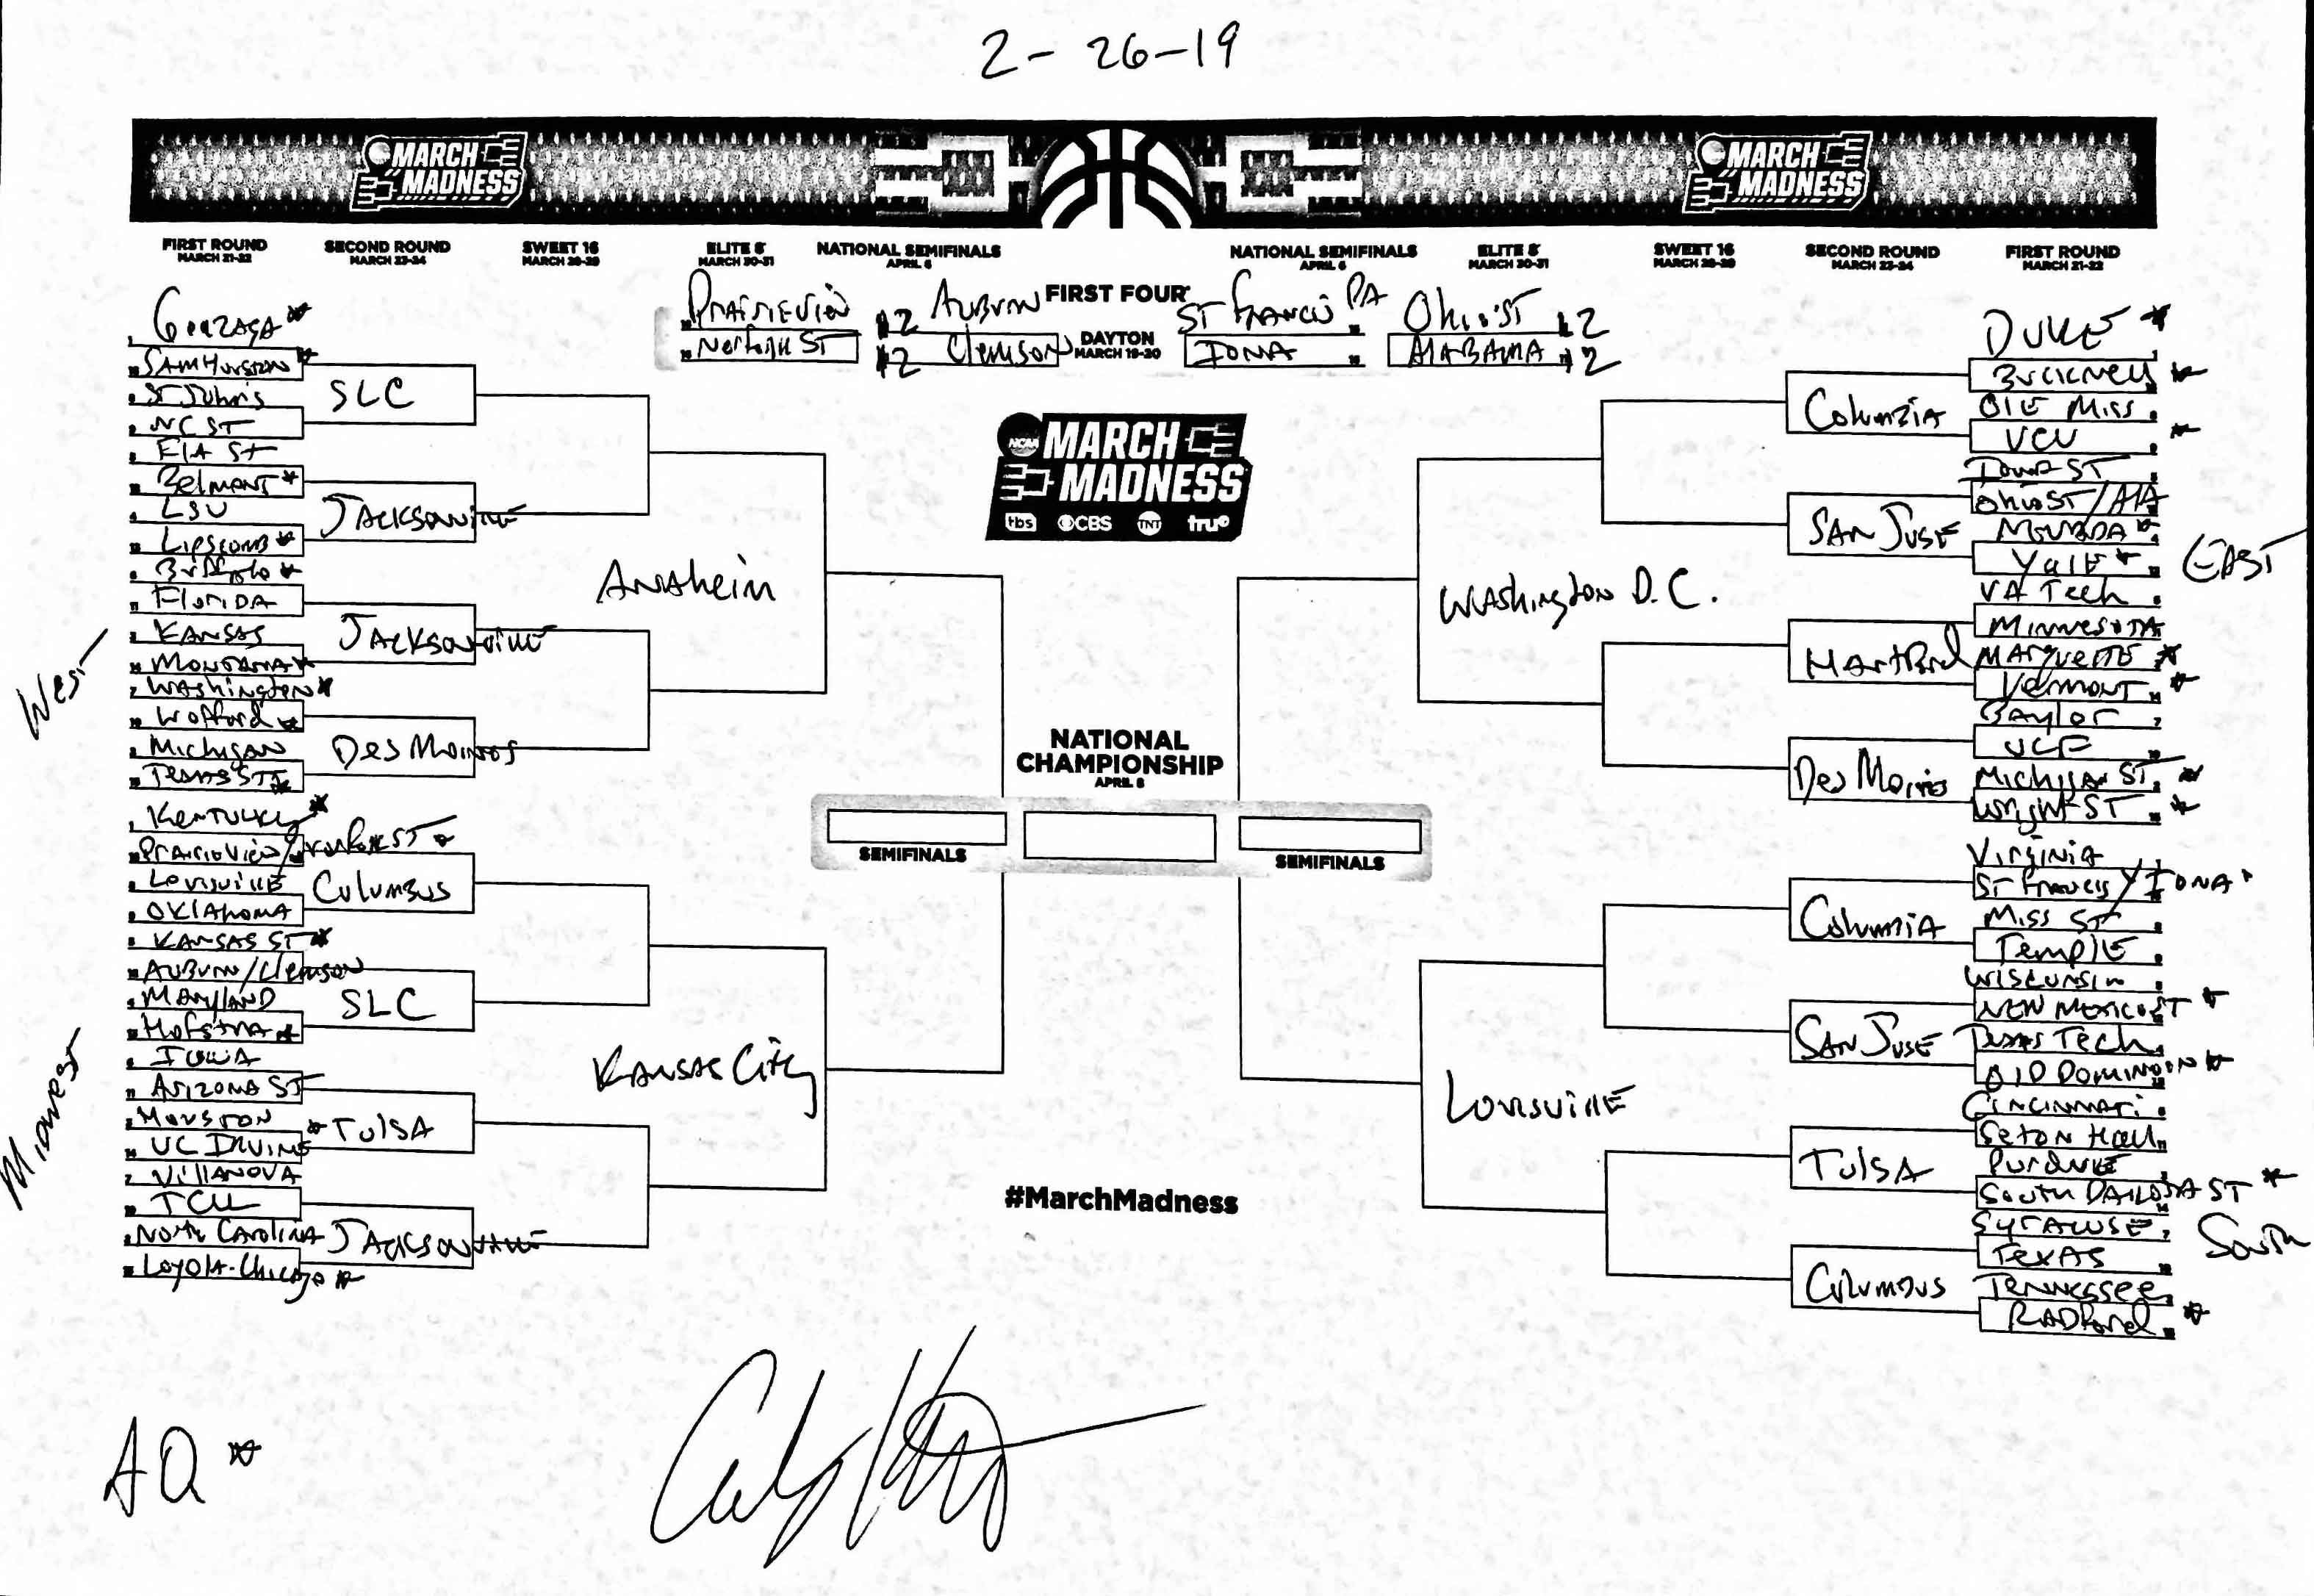 The complete March Madness field of 68 predicted in the last